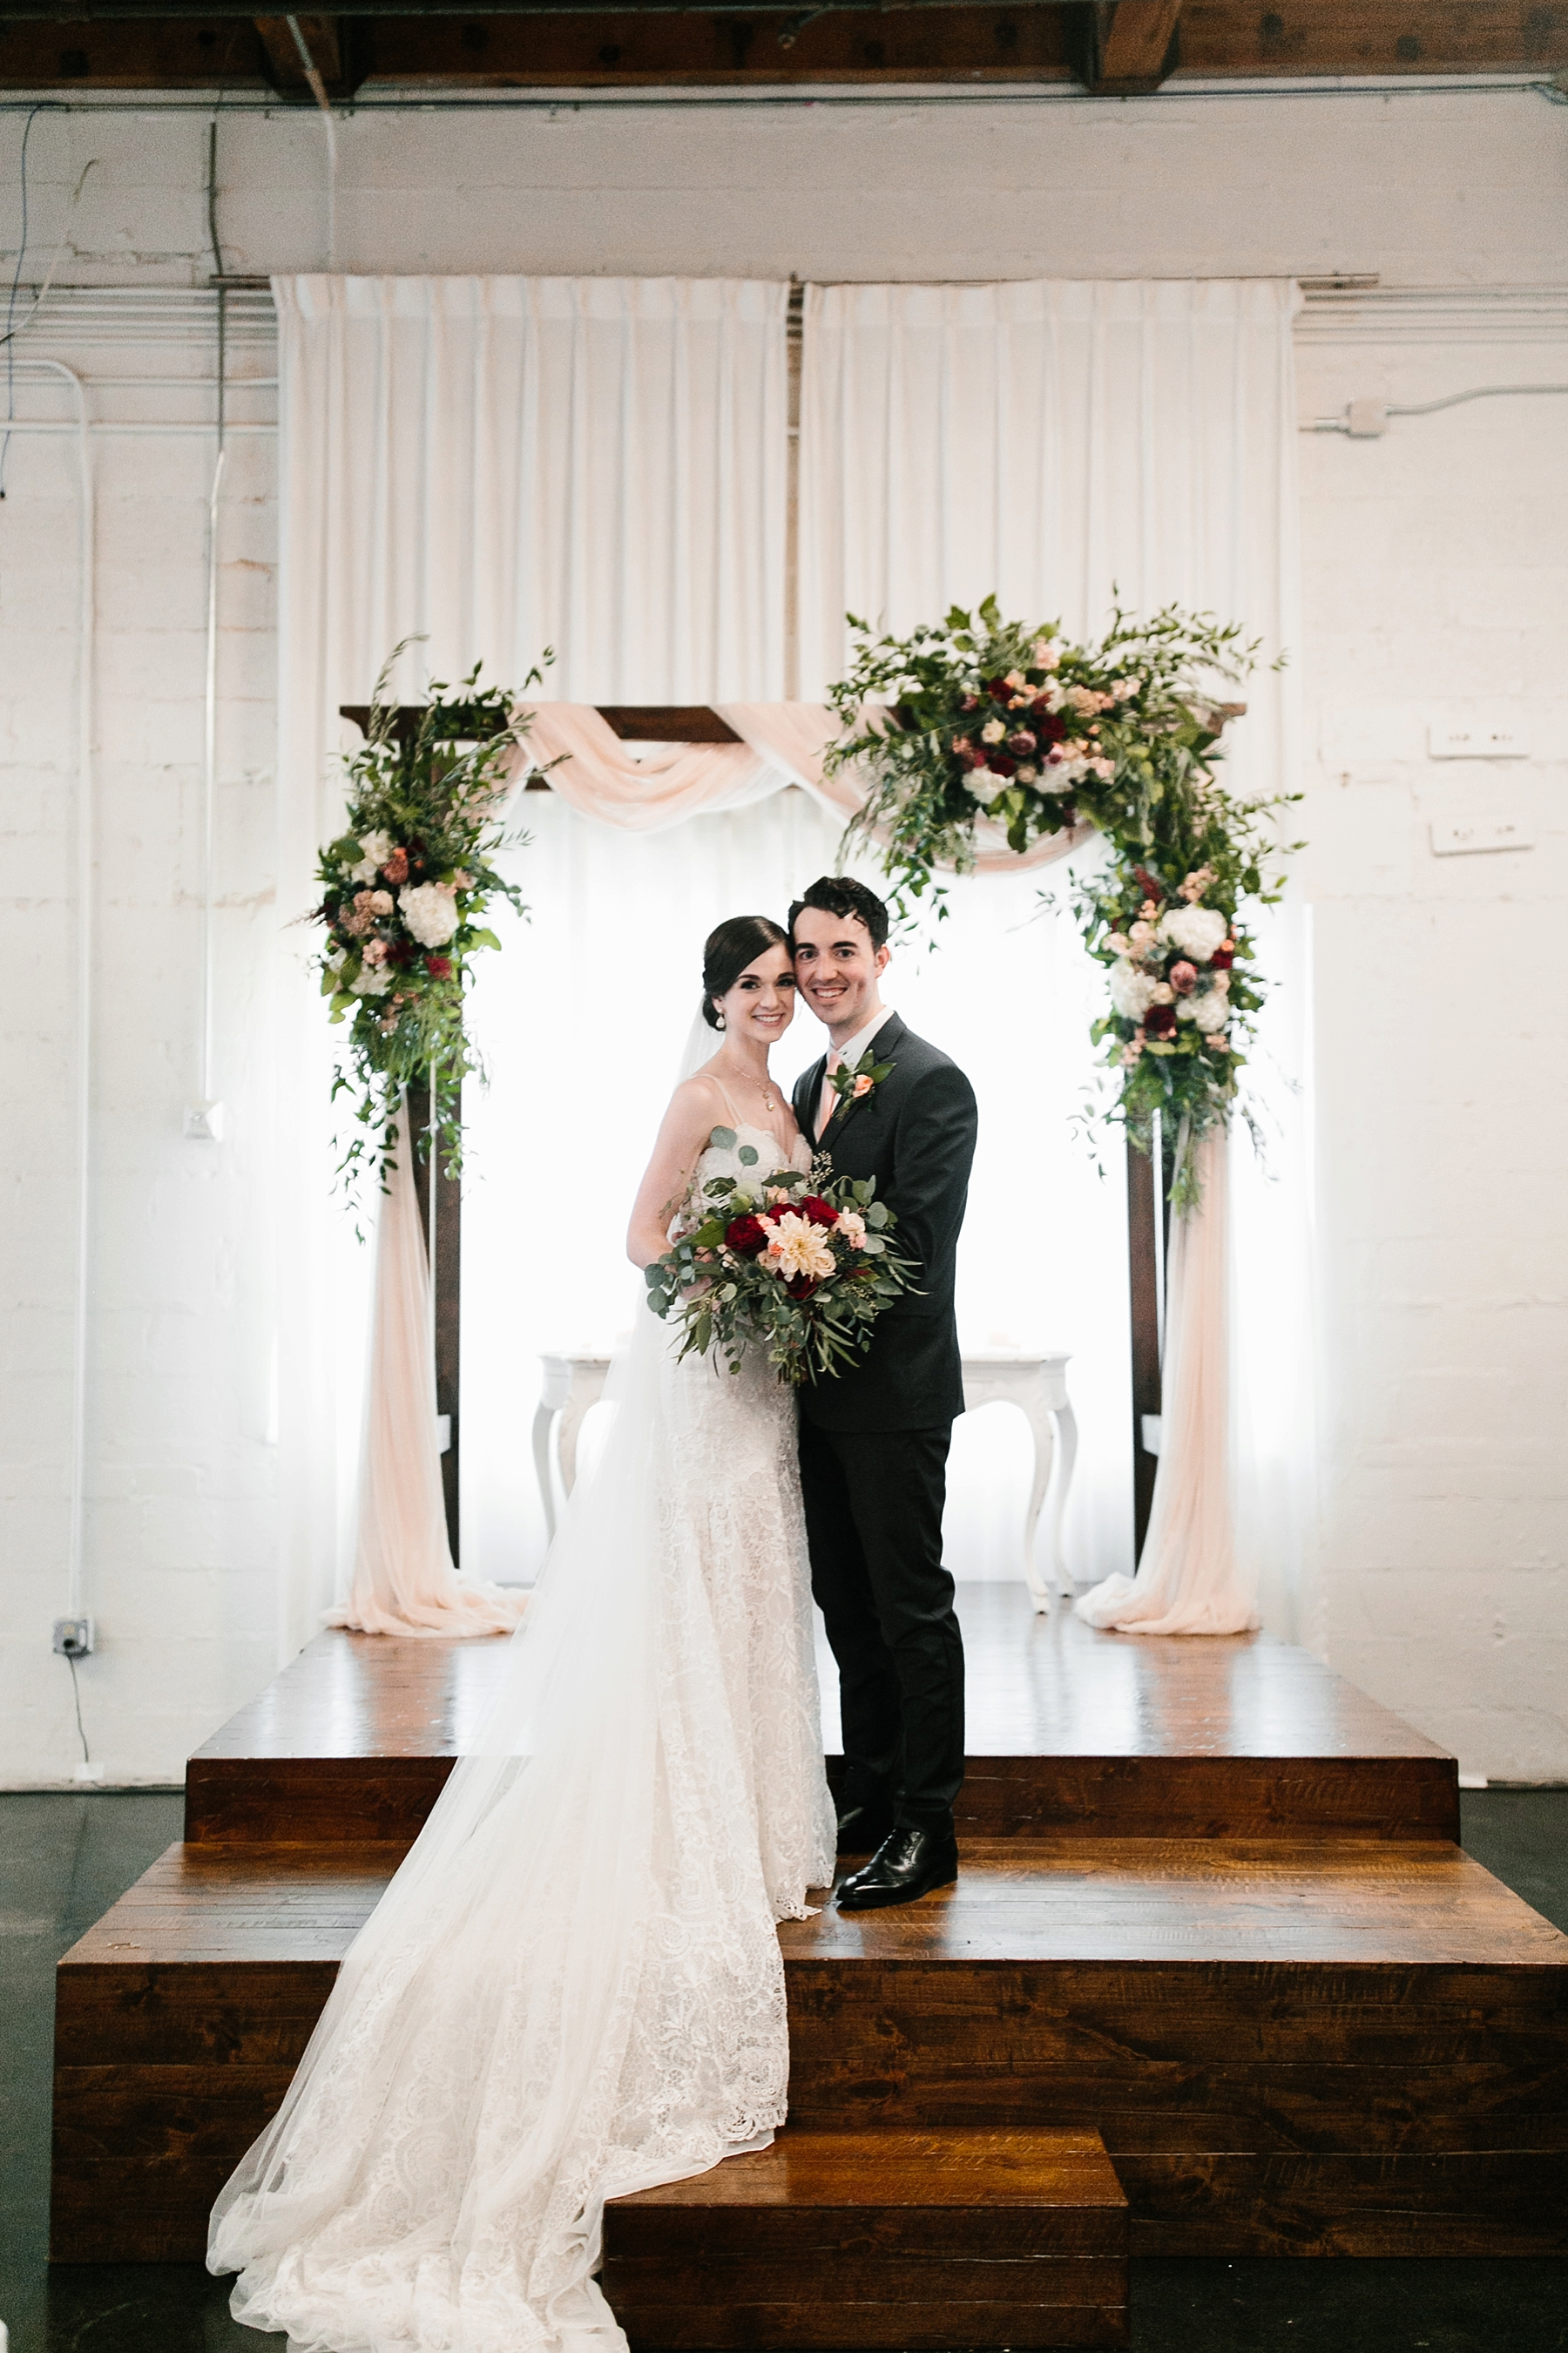 Emily + Caleb _ an elegant, intentional, industrial style wedding with navy + gold accents at 6500 in Dallas, TX by North Texas Wedding Photographer Rachel Meagan Photography _ 110